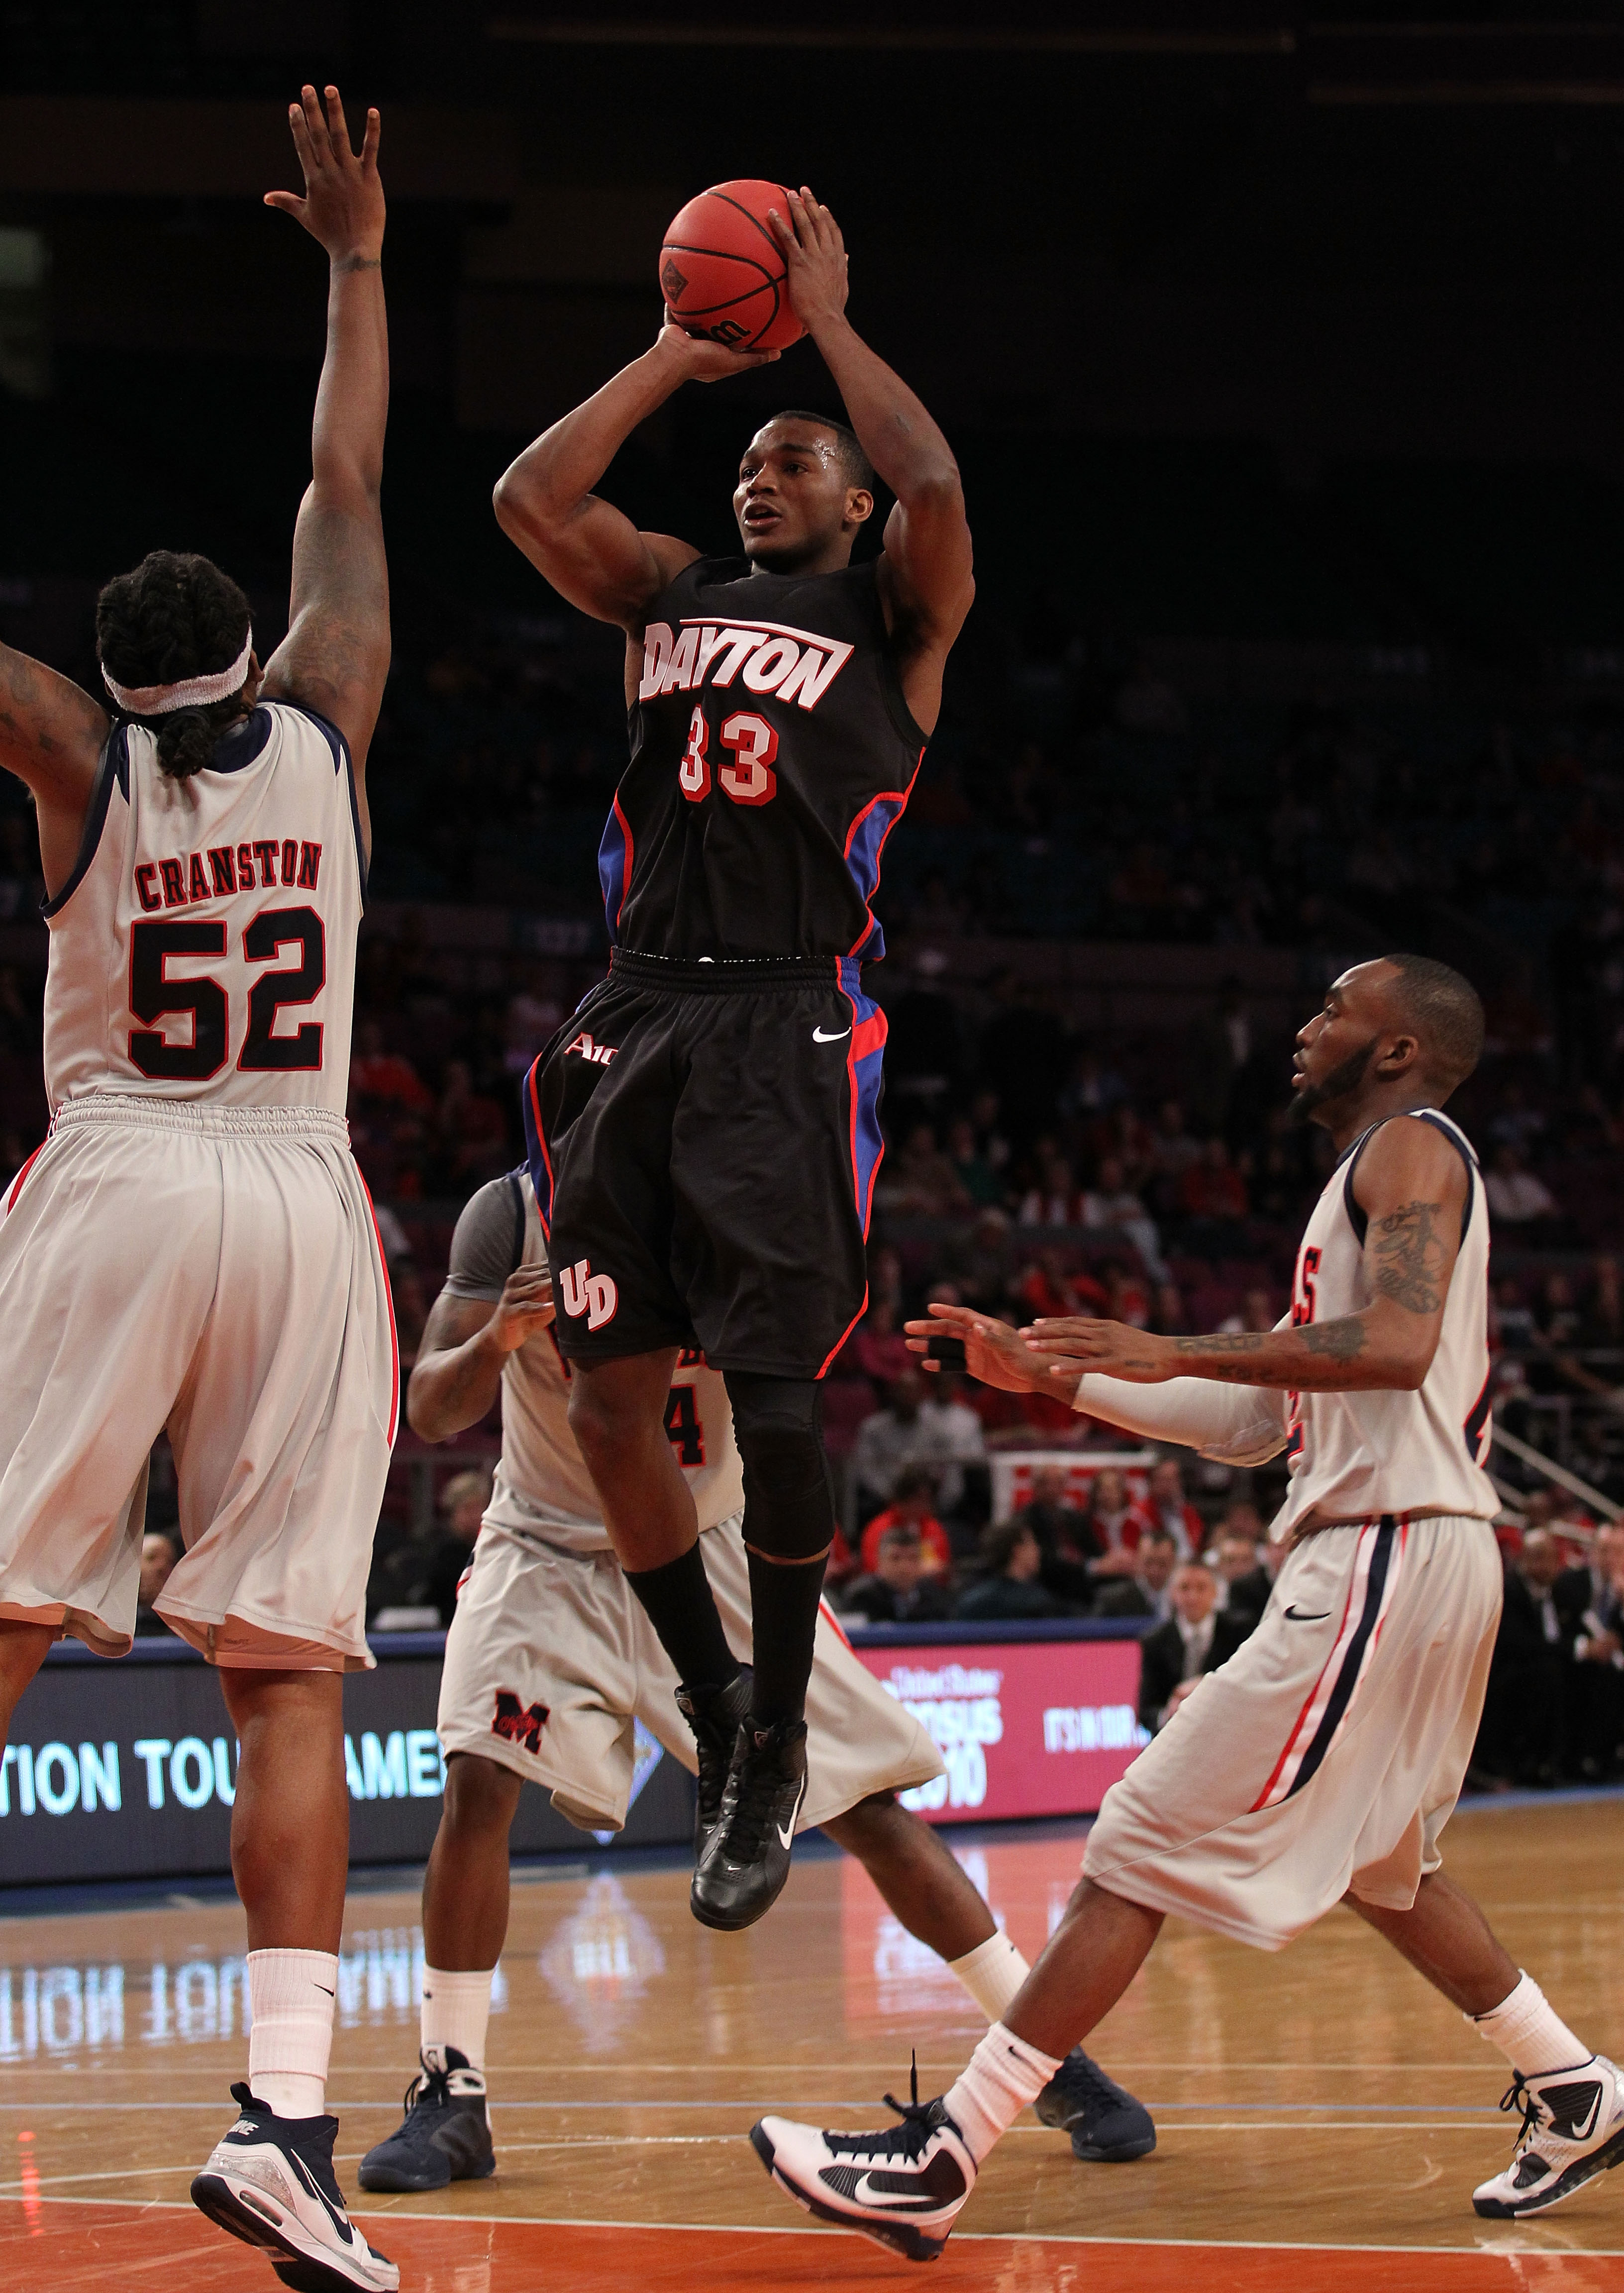 NEW YORK - MARCH 30:  Chris Wright #33 of the Dayton Flyers shoots a shot over DeAundre Cranston #52 of Ole Miss during their semi final at Madison Square Garden on March 30, 2010 in New York, New York.  (Photo by Nick Laham/Getty Images)